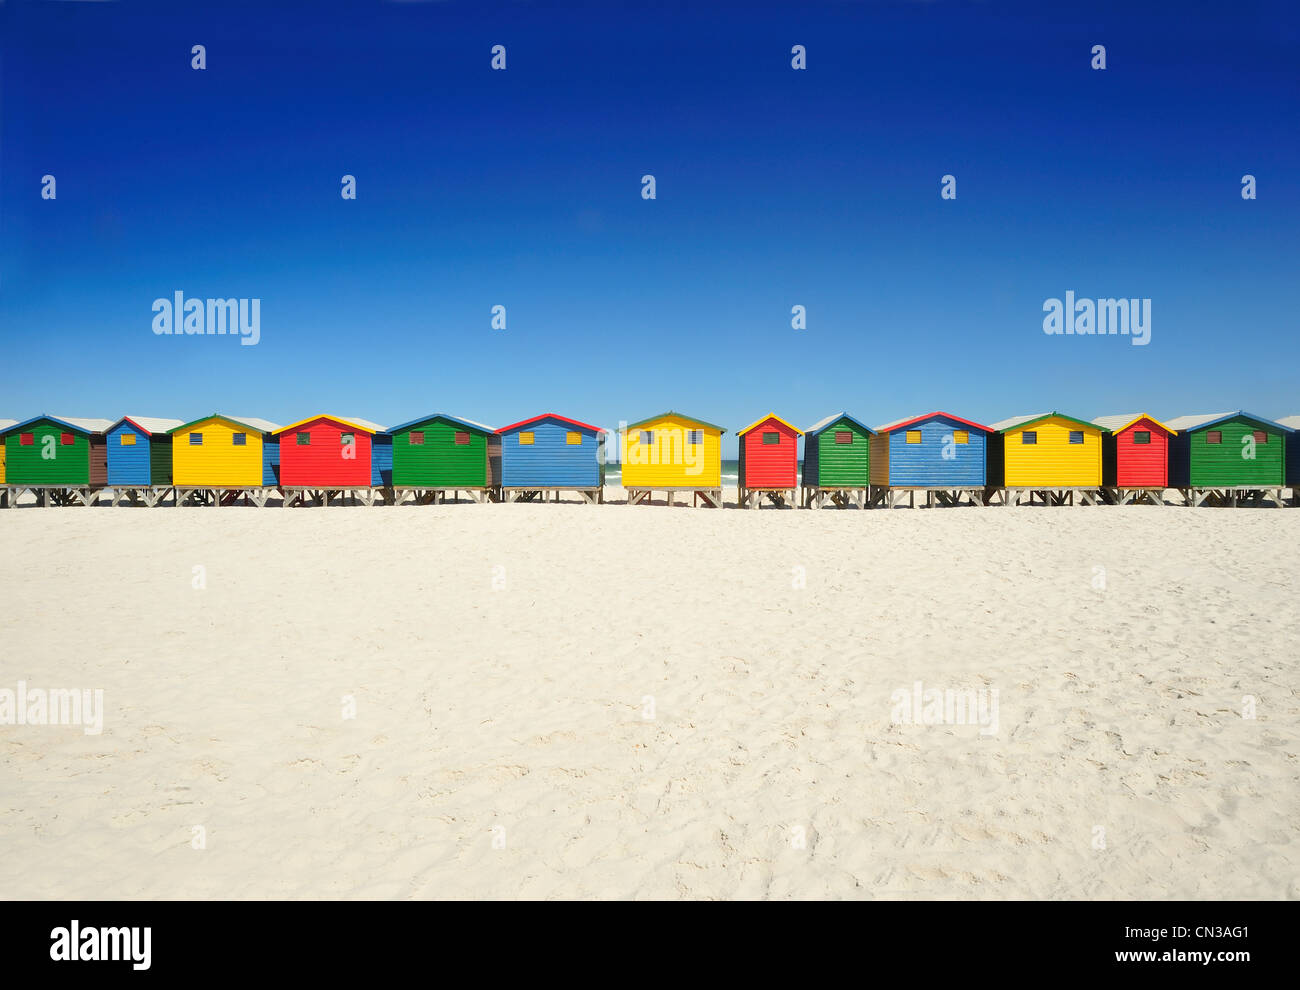 Brightly colored beach huts on beach - Stock Image